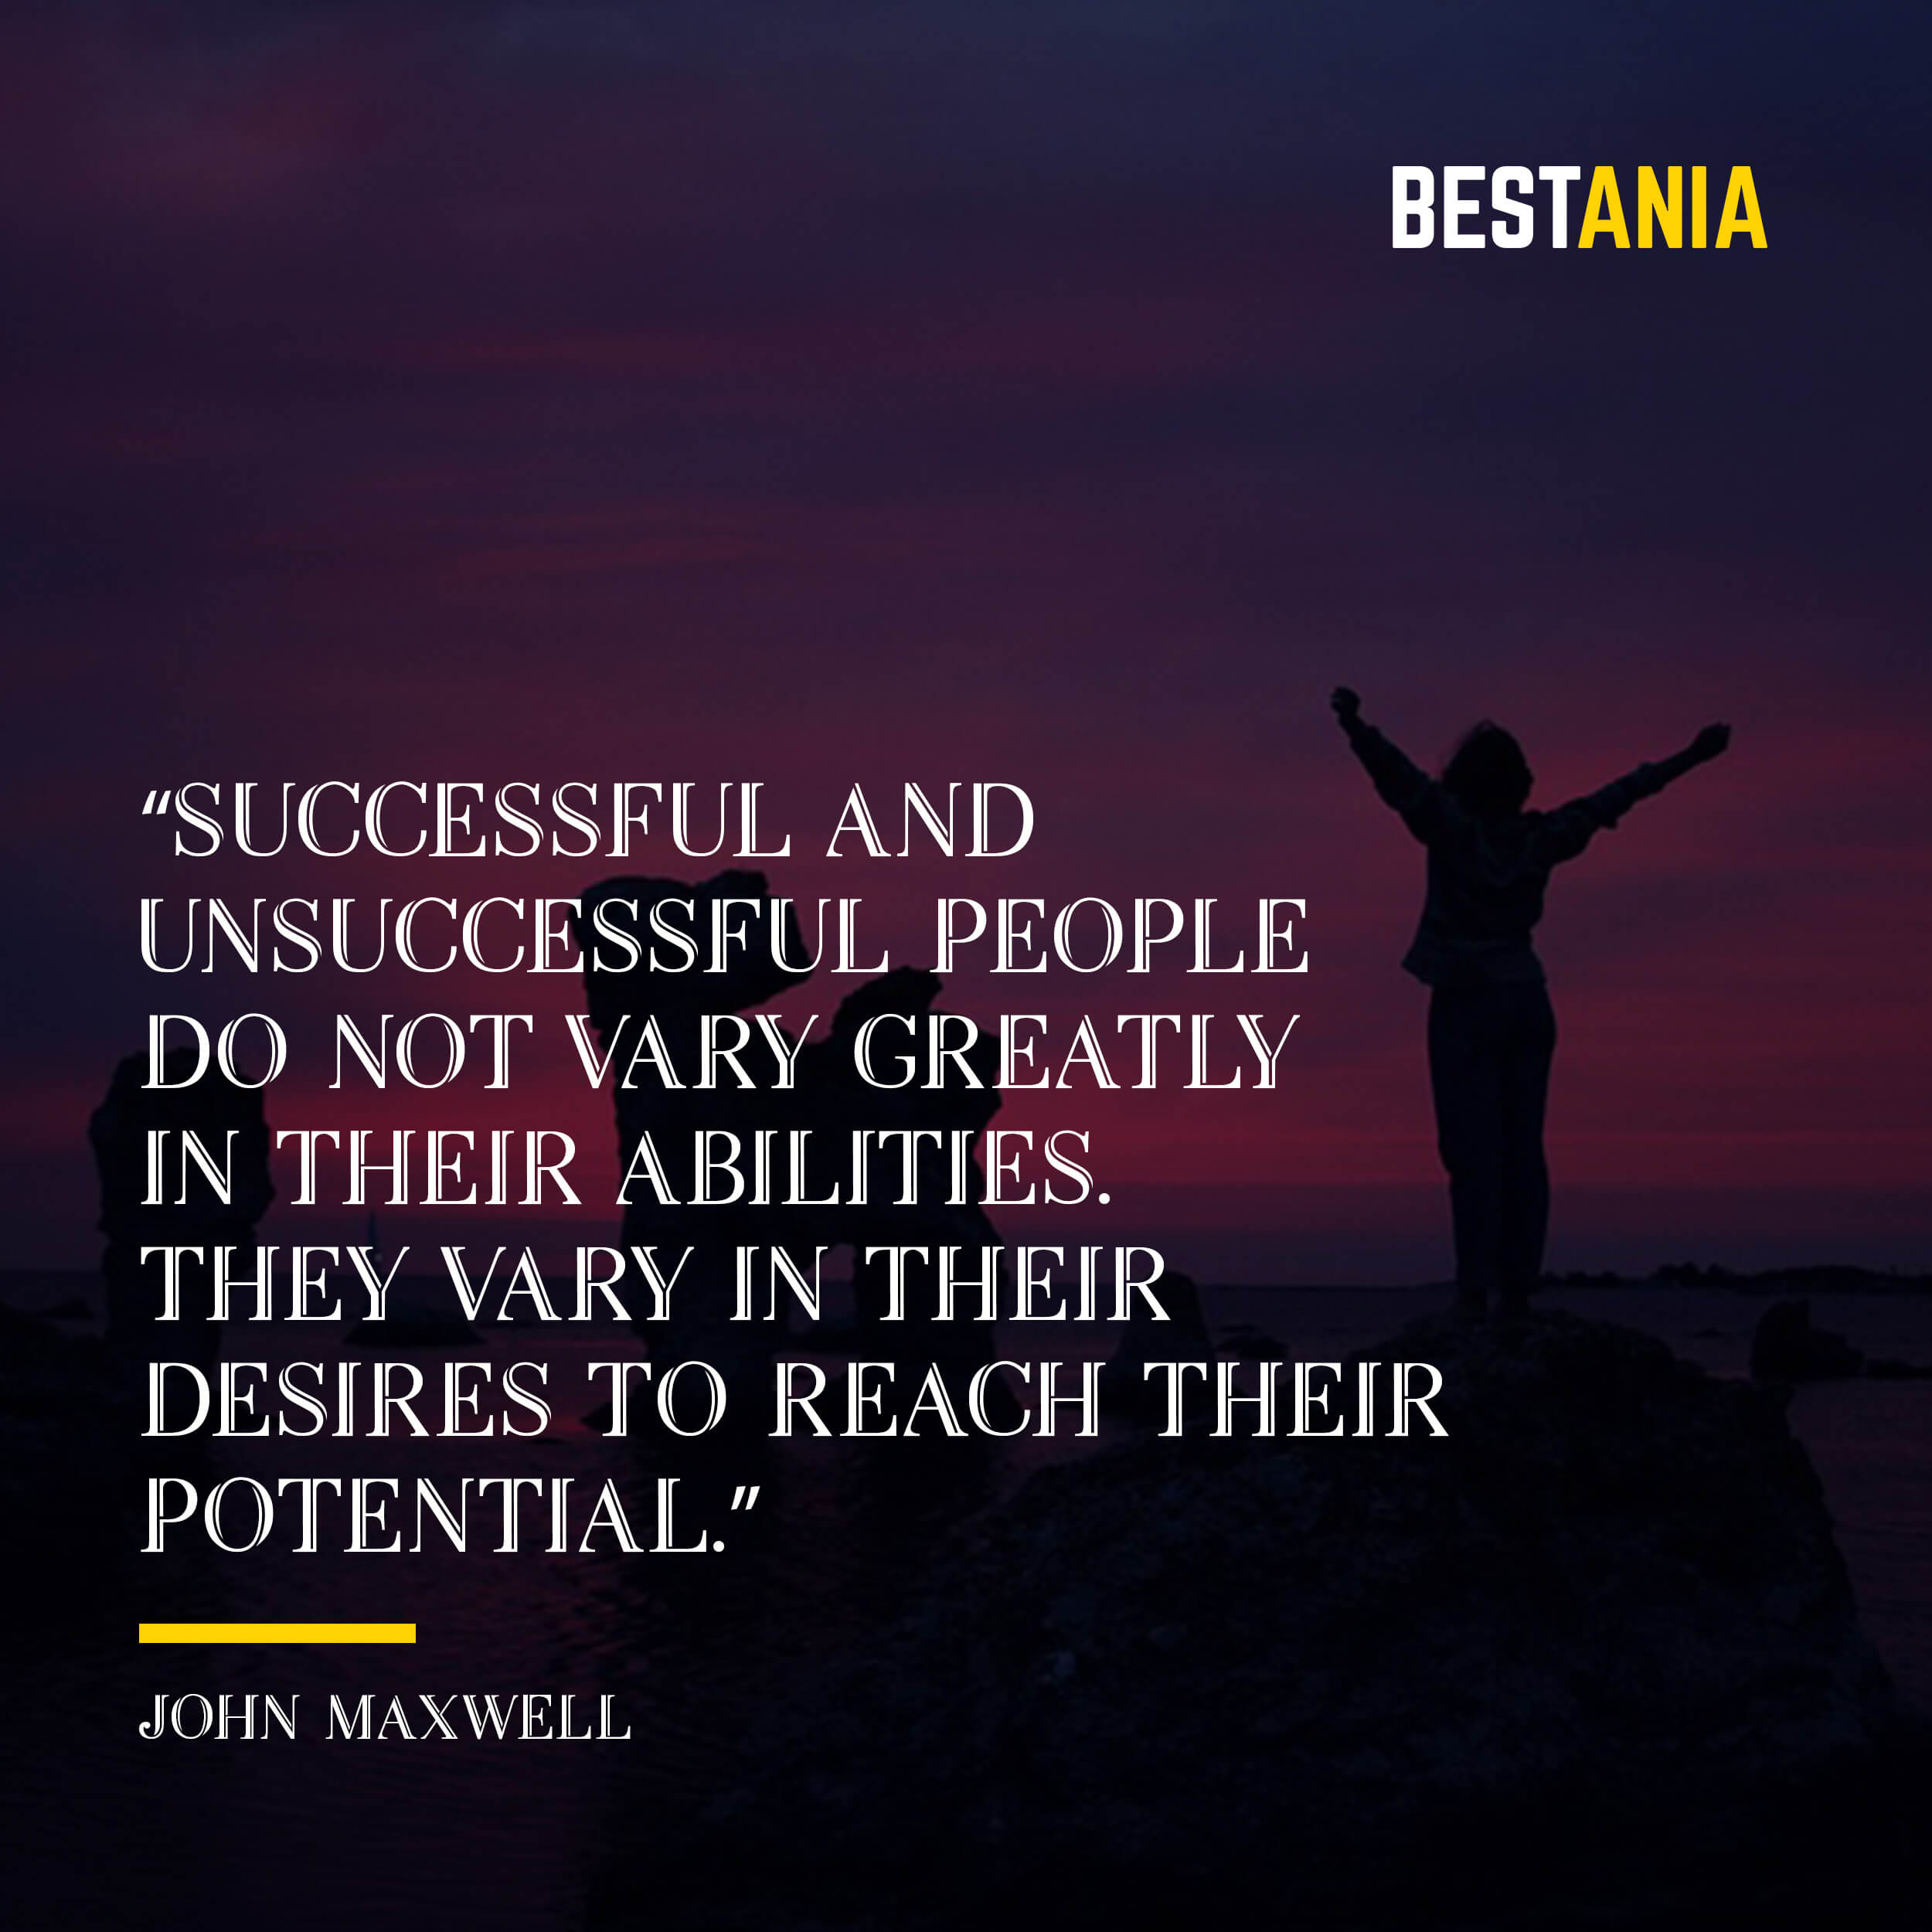 """""""Successful and unsuccessful people do not vary greatly in their abilities. They vary in their desires to reach their potential."""" – John Maxwell"""